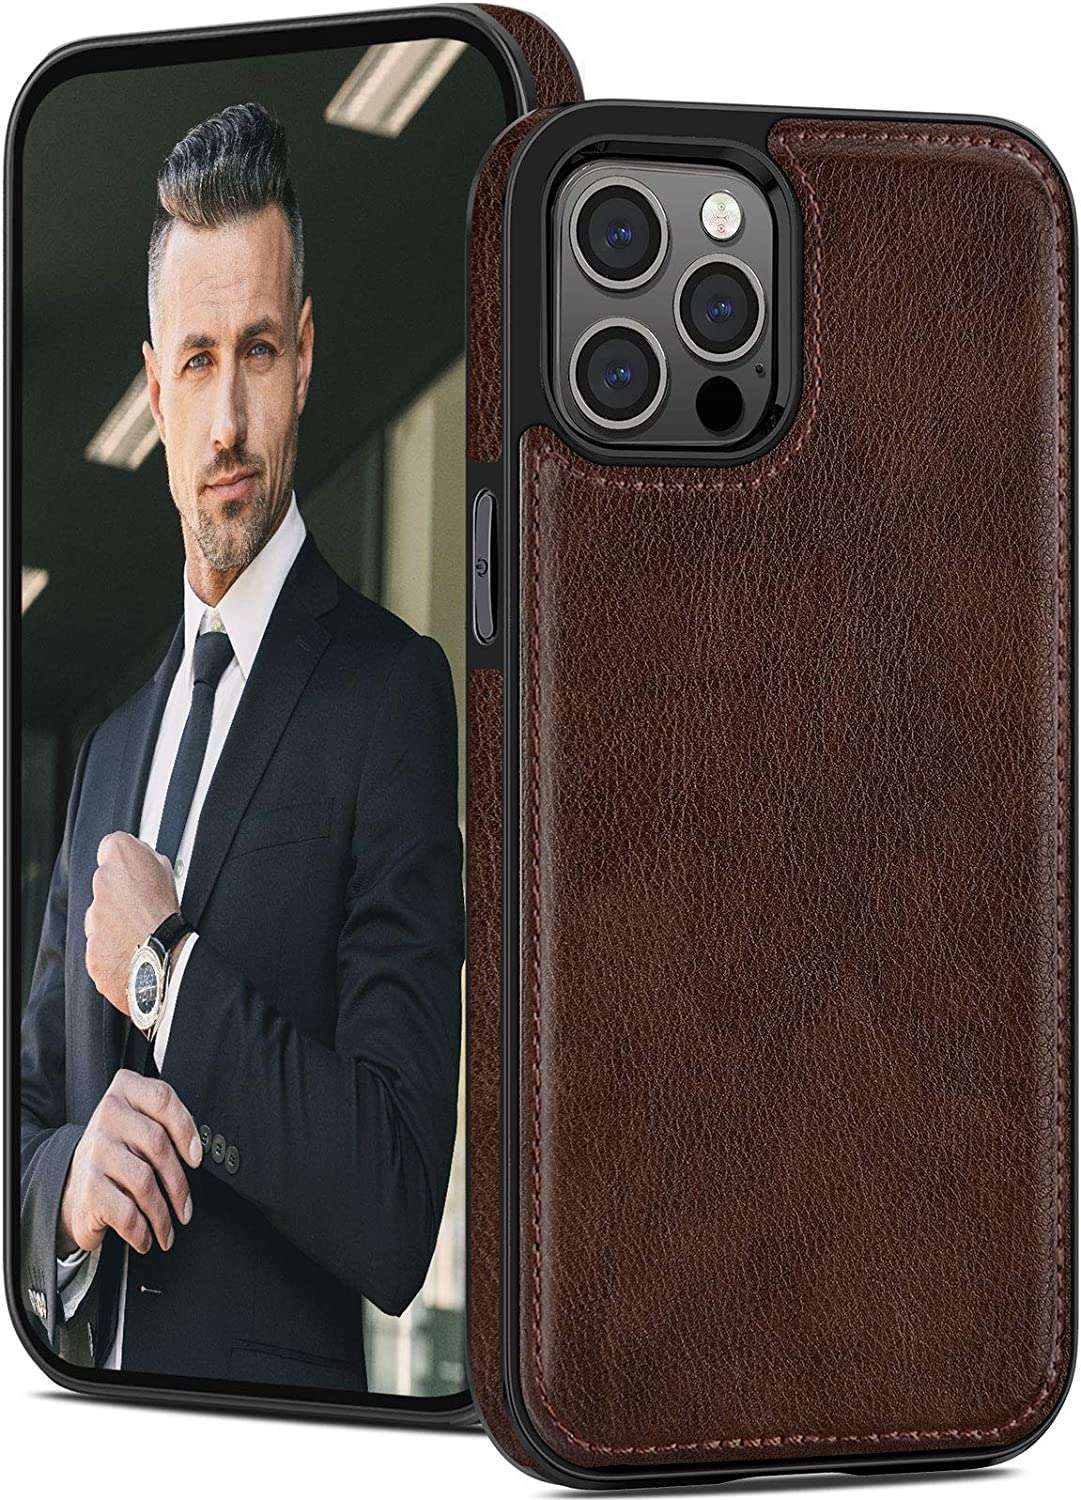 LOHASIC Leather for iPhone 12 Pro Max Case Men, Phone Cover Vintage Retro Hybrid Women, Protective Shockproof Non-Slip TPU Bumper Defender Compatible with iPhone 12 Pro Max 5G (2020) 6.7 Brown